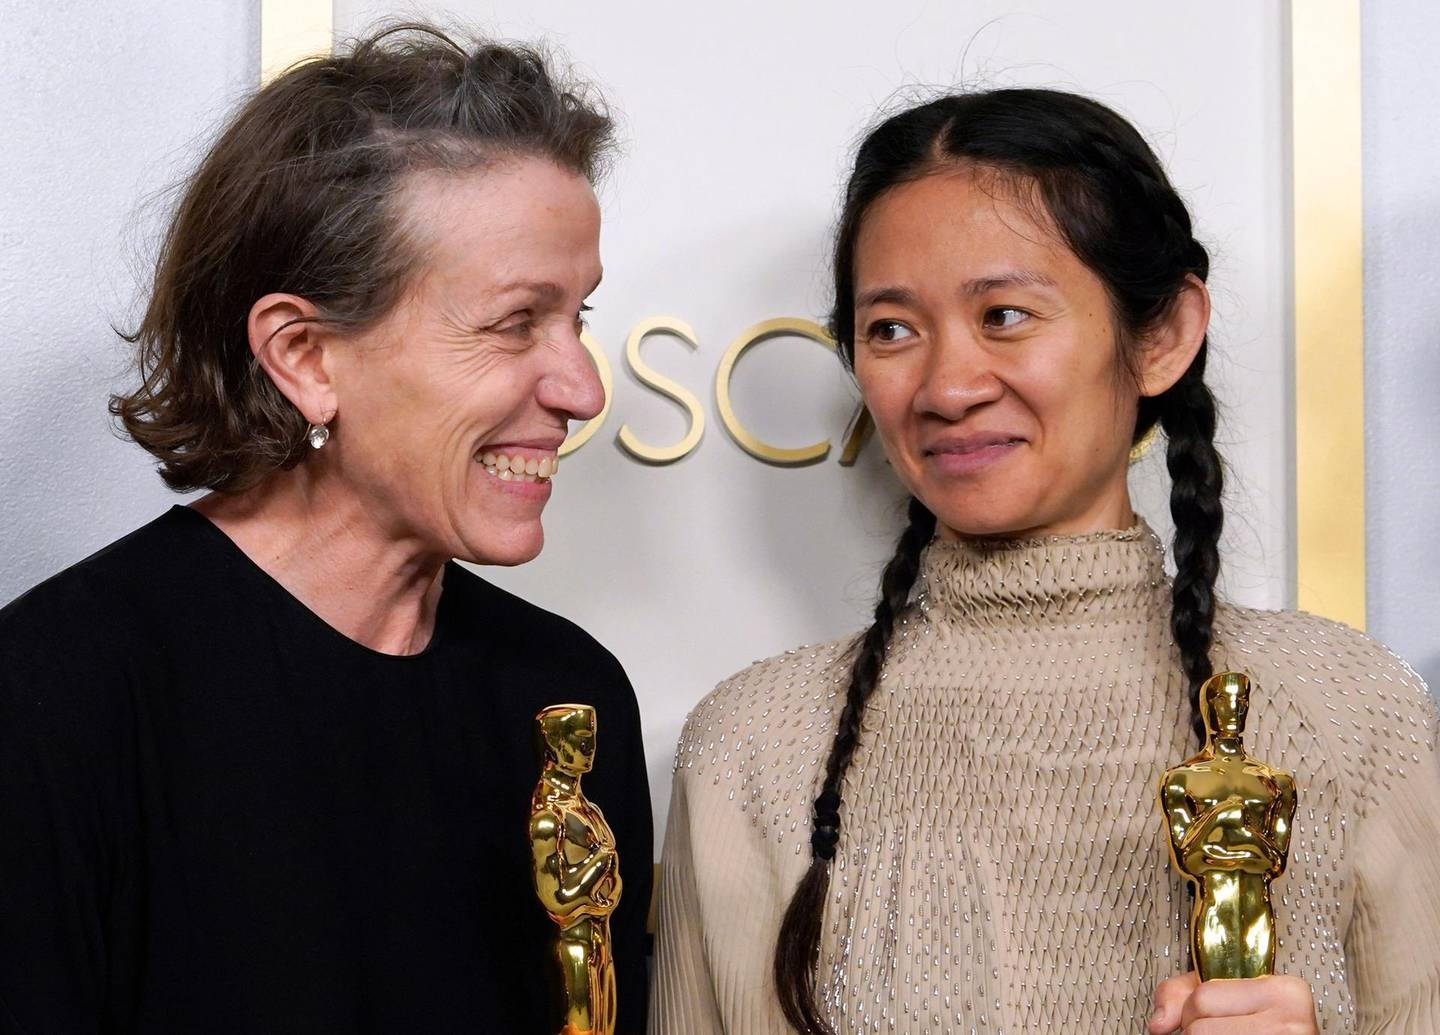 """Producers Frances McDormand and Chloe Zhao, hold the Oscar for Best Picture for """"Nomadland"""" as they pose in the press room at the Oscars on April 25, 2021, at Union Station in Los Angeles.  McDormand also won for Actress in a Leading Role for """"Nomadland"""" and Chloe Zhao wond Directing for """"Nomadland"""" -   / AFP / POOL / Chris Pizzello"""